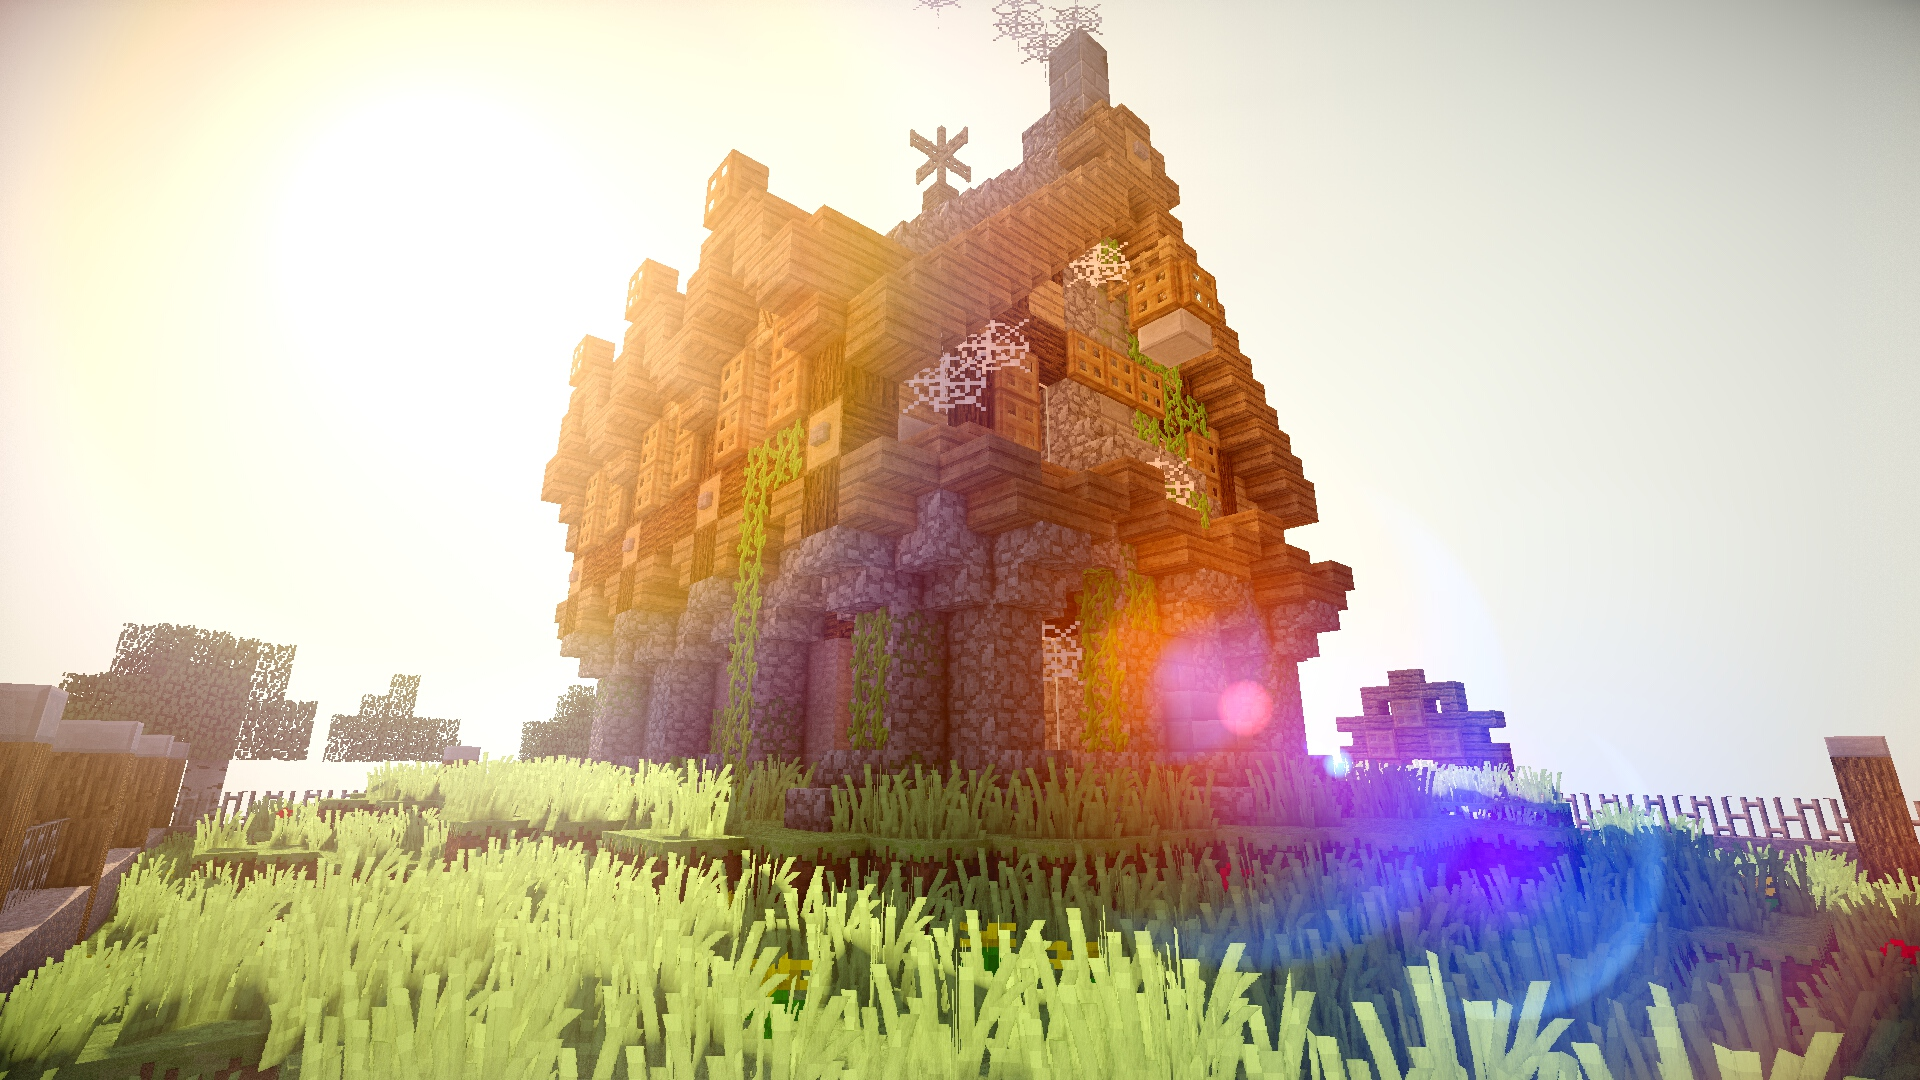 Beautiful Minecraft Game Wallpaper 1920x1080